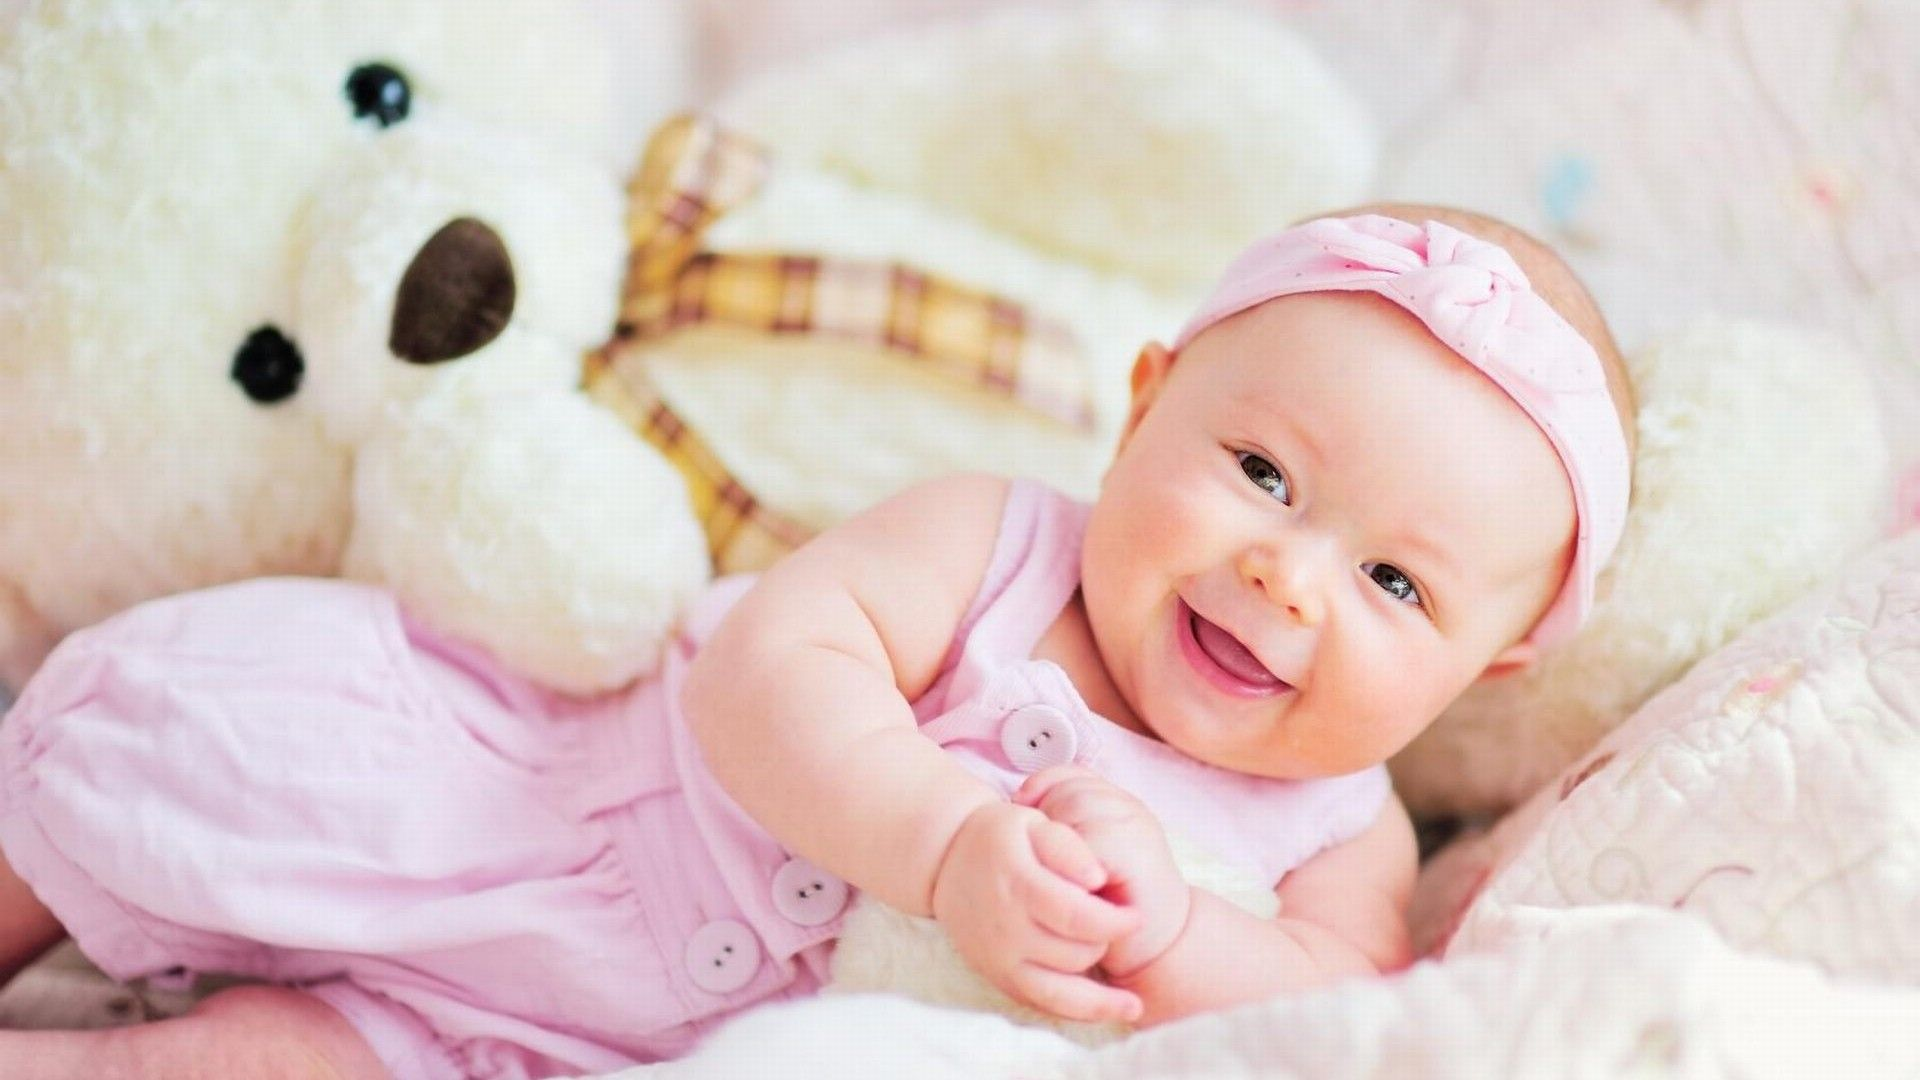 Most Beautiful Baby Girl Wallpapers | HD Pictures Images u2013 HD ...